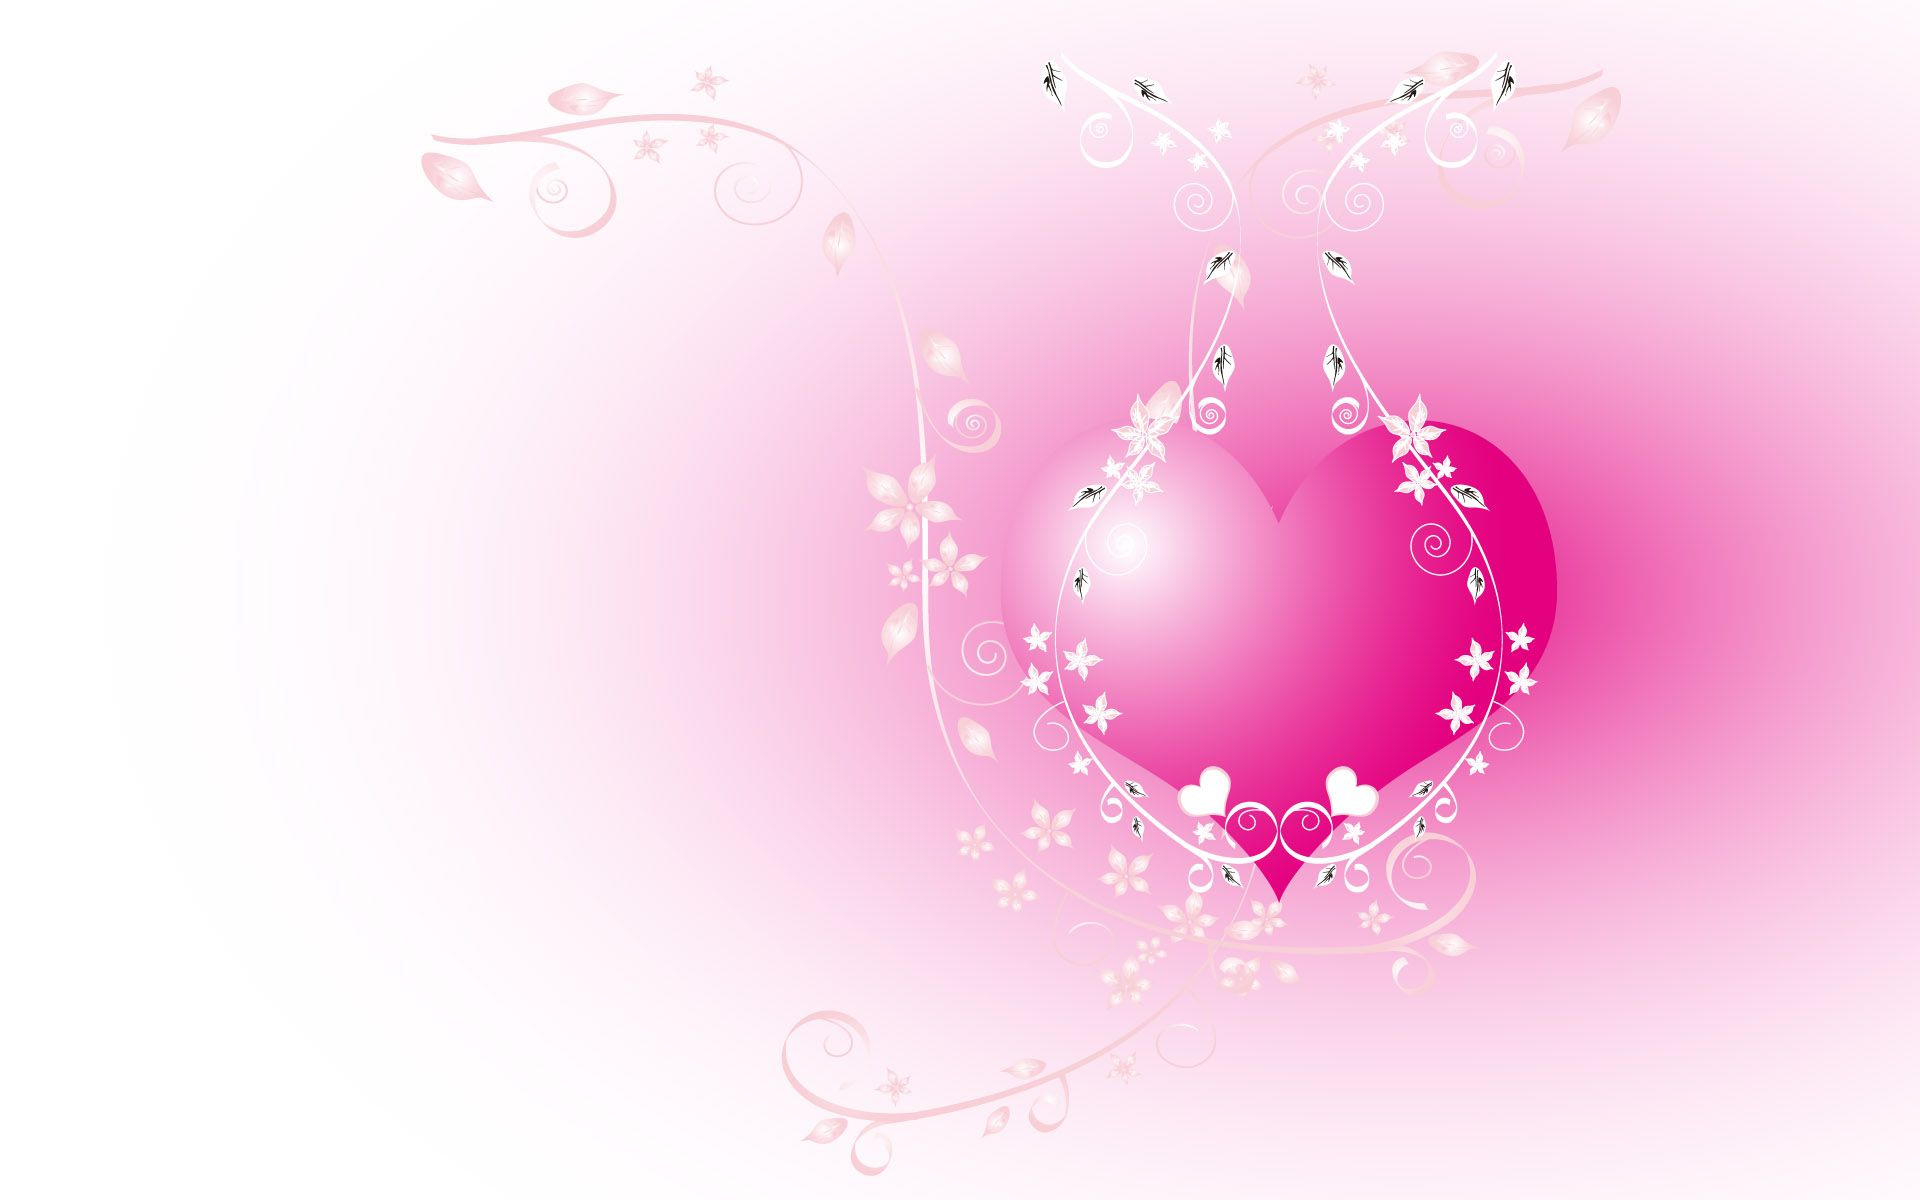 Download Hearts Wallpaper The Pink Heart Image Wallpaper